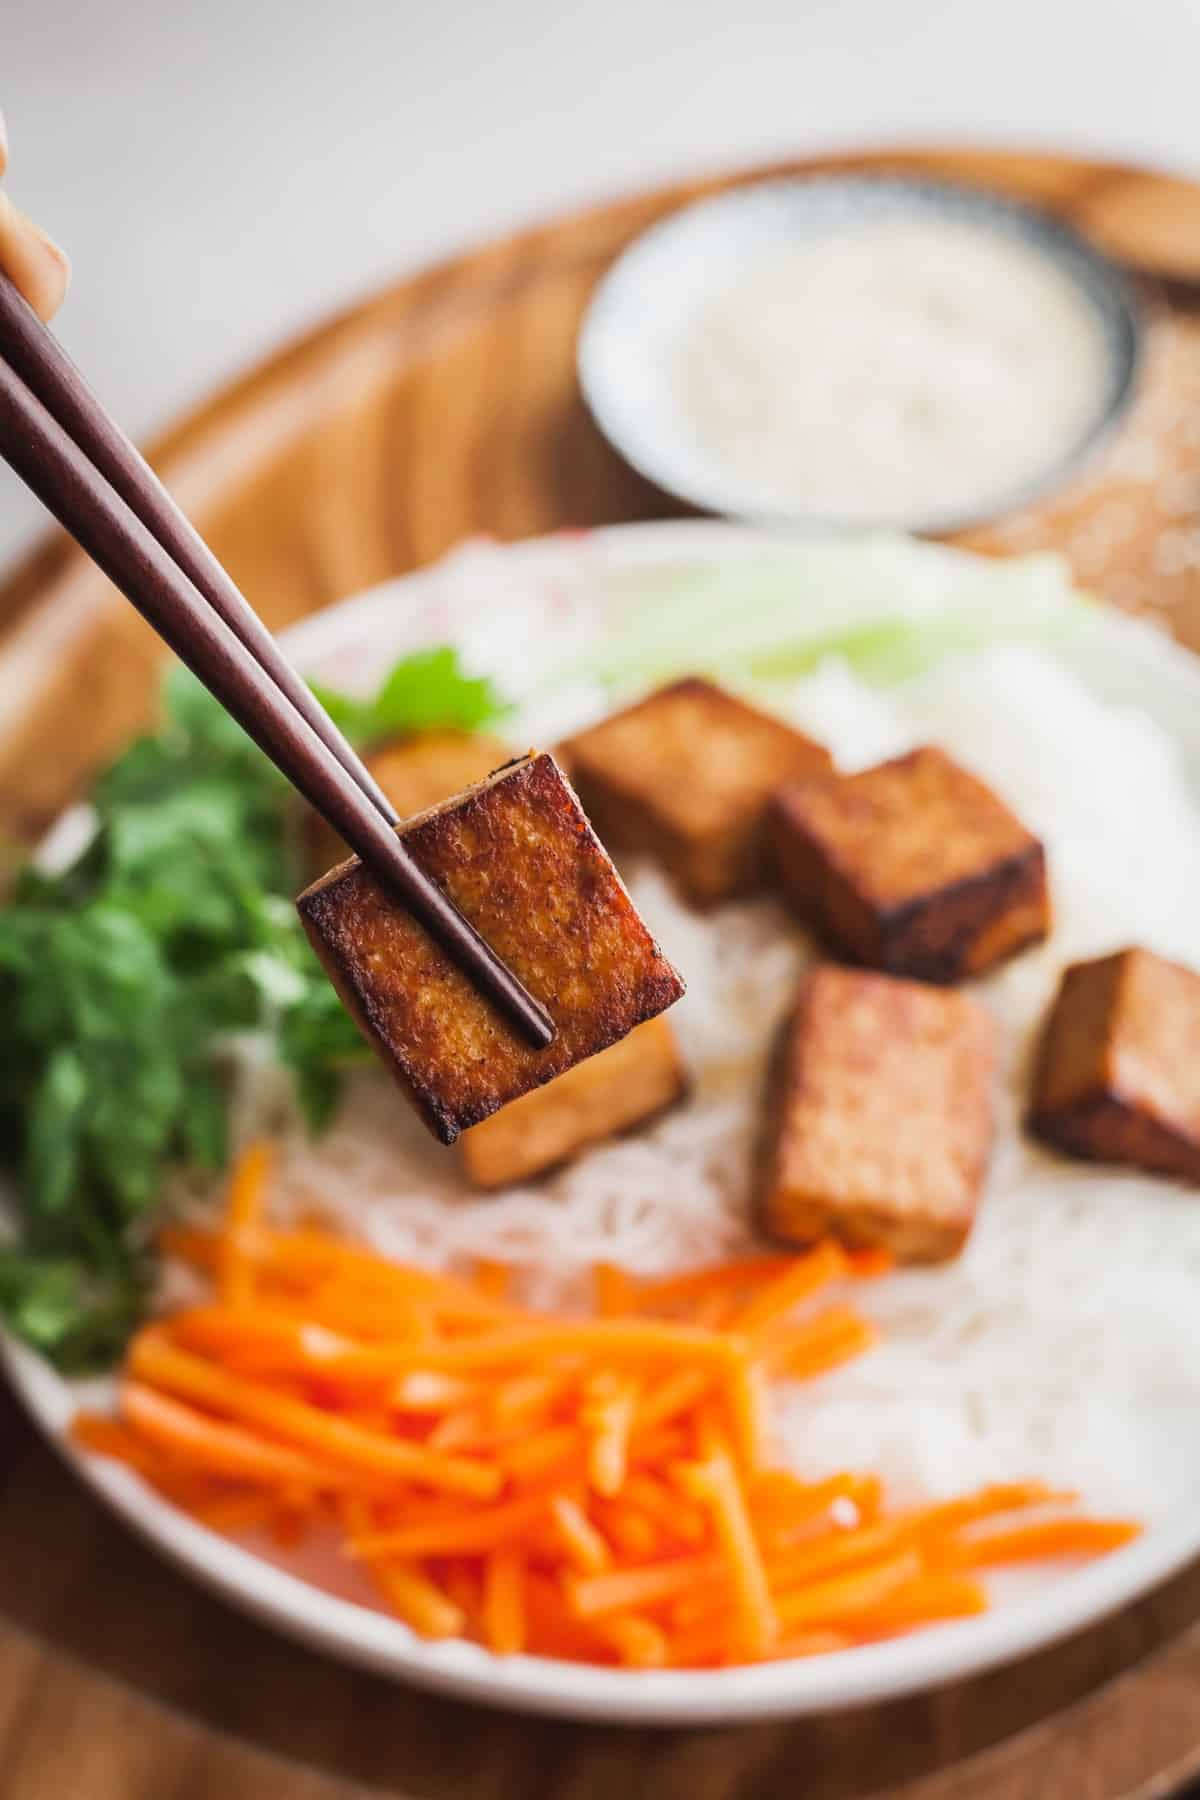 chopsticks holding a piece of perfectly cooked tofu